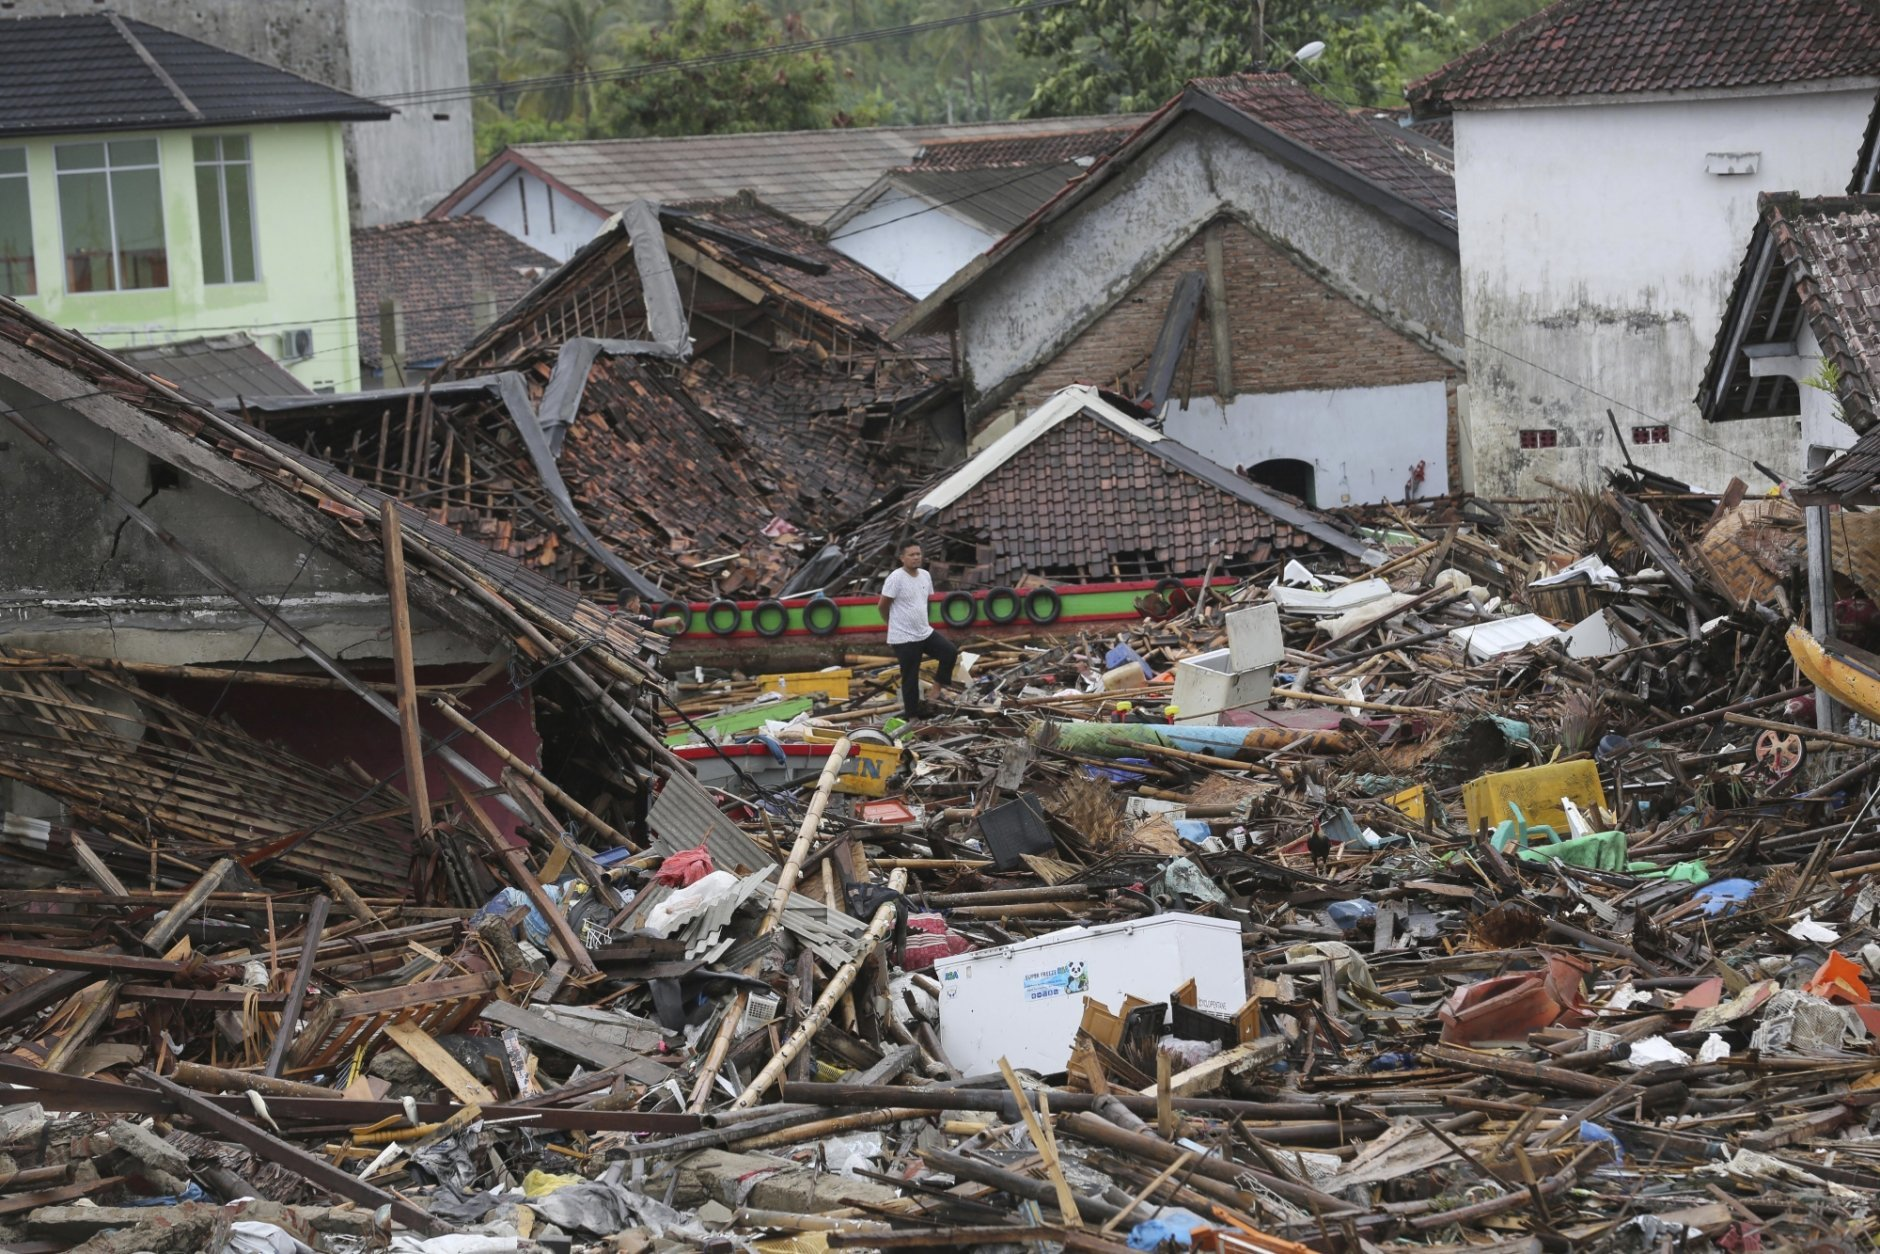 A man inspects the damage at a tsunami-ravaged village in Sumur, Indonesia, Tuesday, Dec. 25, 2018. The Christmas holiday was somber with prayers for tsunami victims in the Indonesian region hit by waves that struck without warning Saturday night.(AP Photo/Tatan Syuflana)